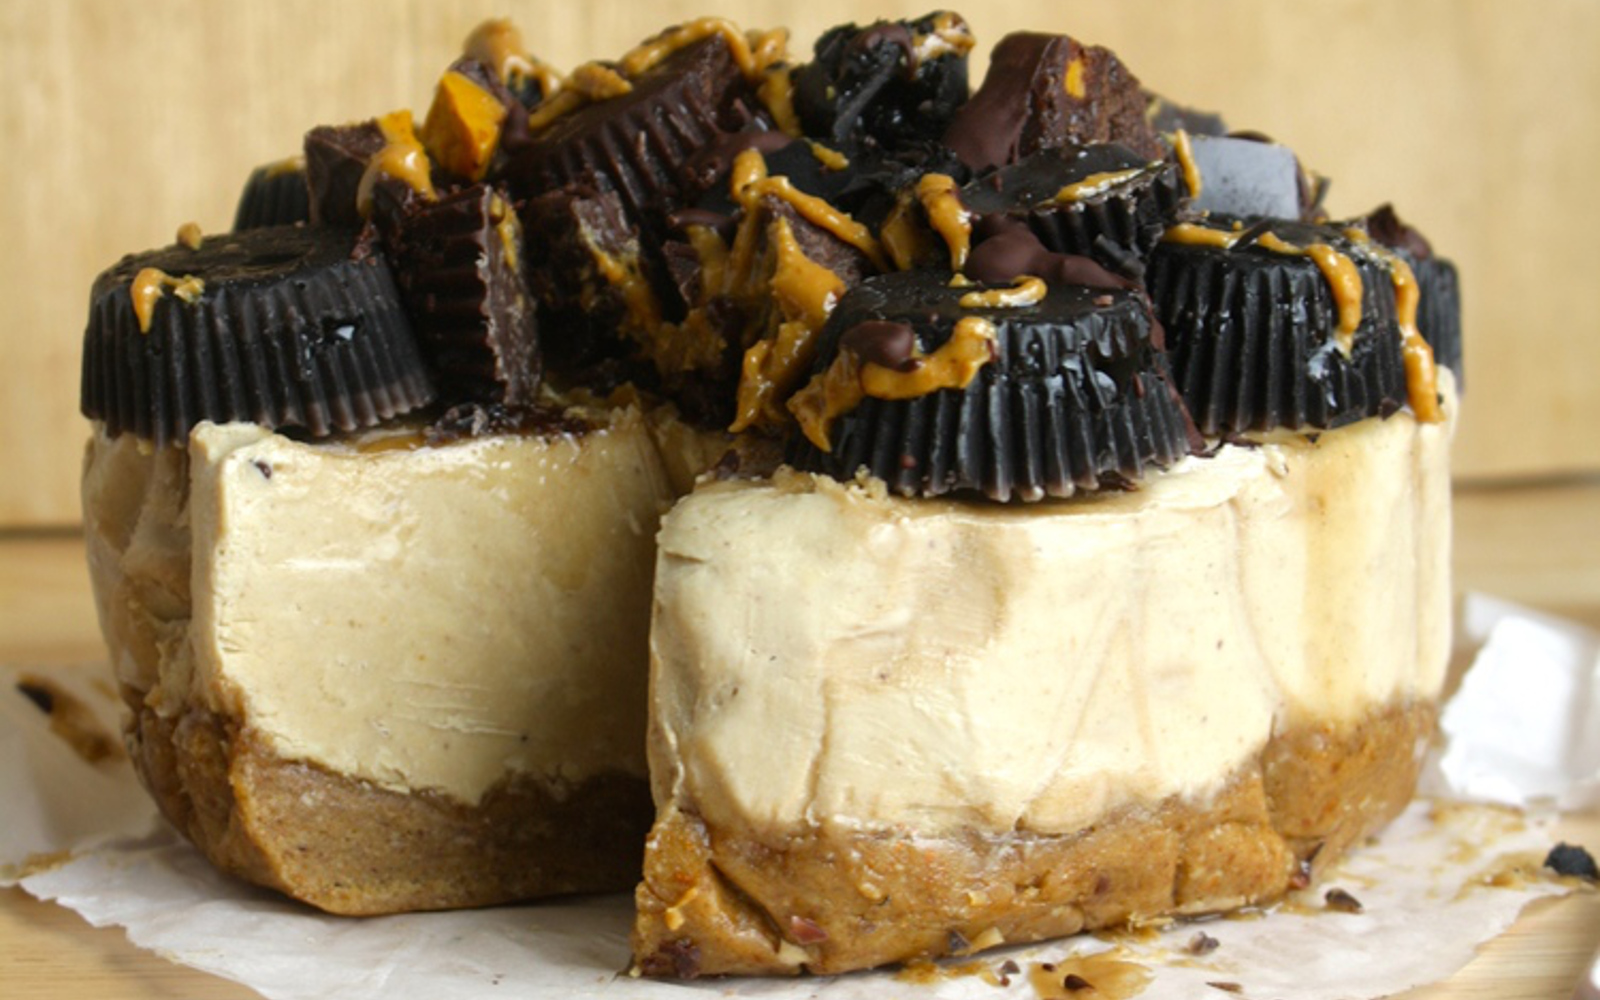 Vegan Dark Chocolate Tofu Cheesecake with Peanut Butter Pretzel Crust